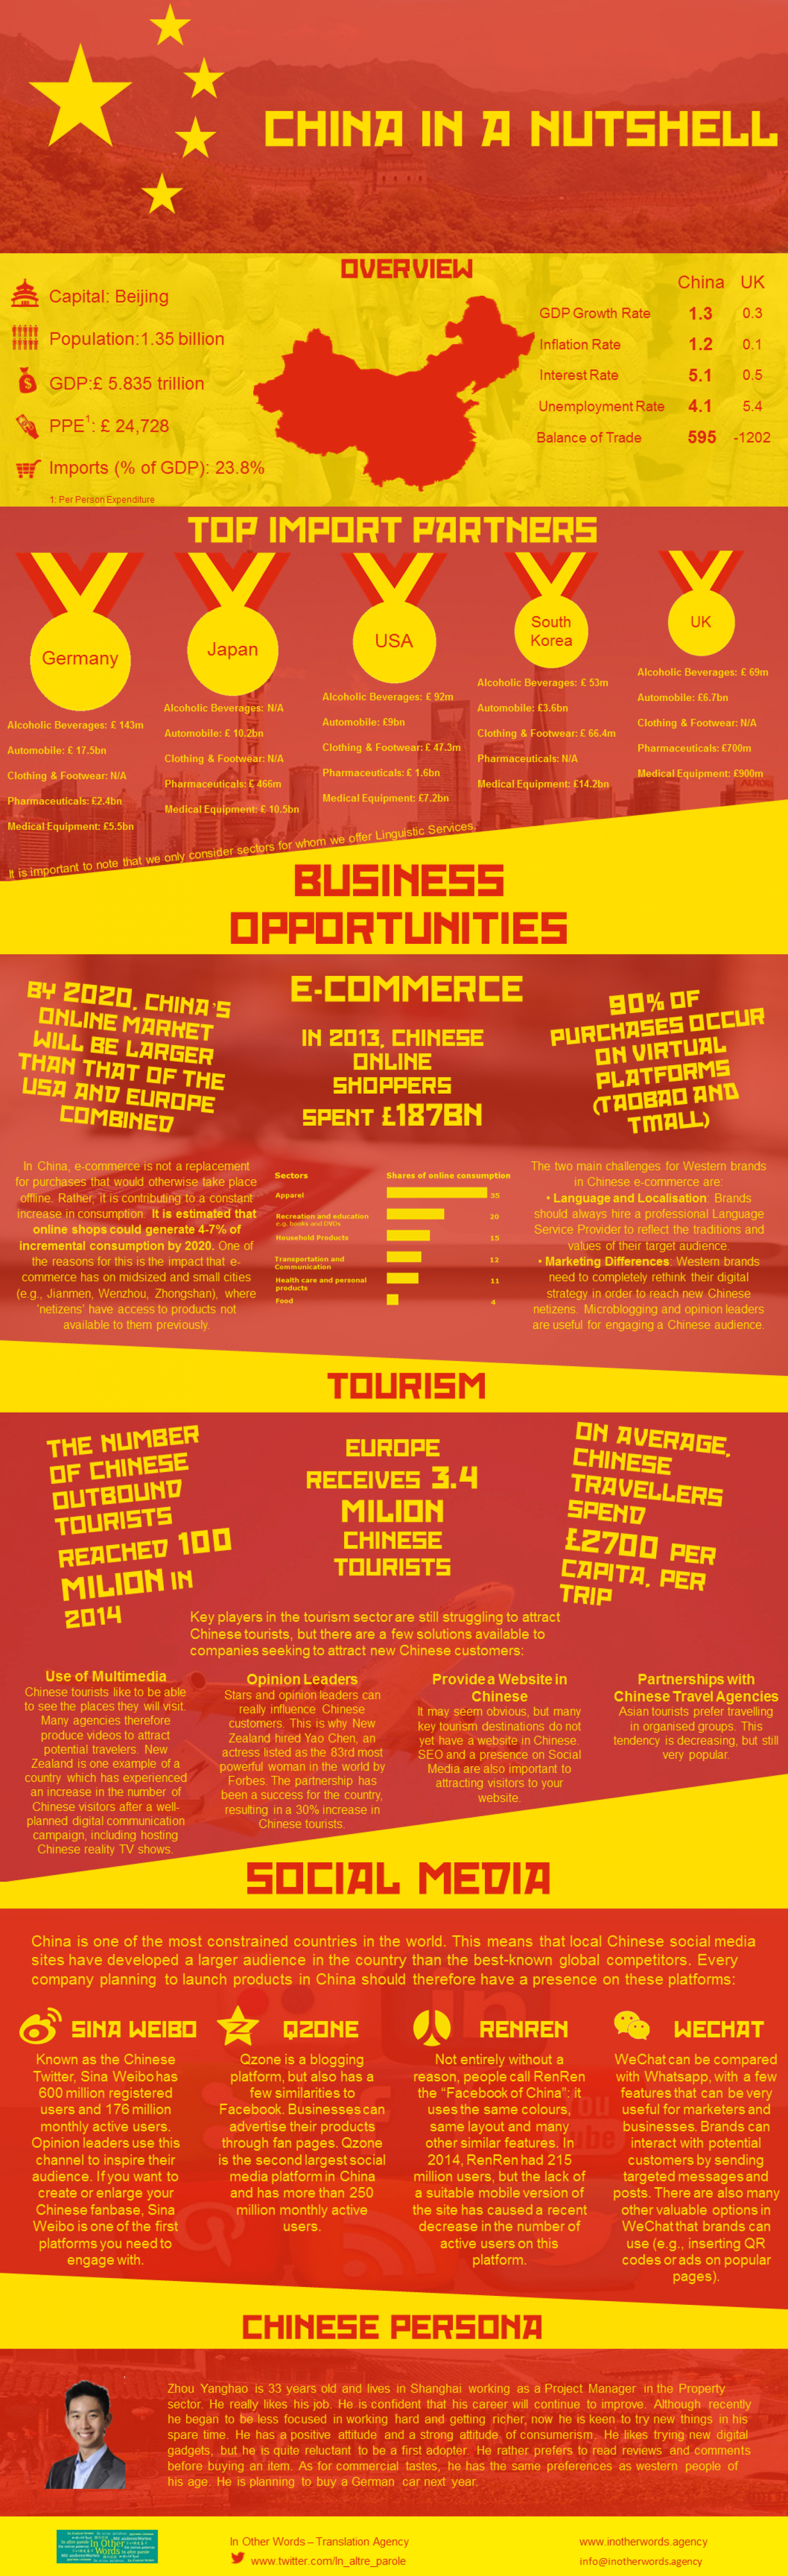 China in a Nutshell Infographic